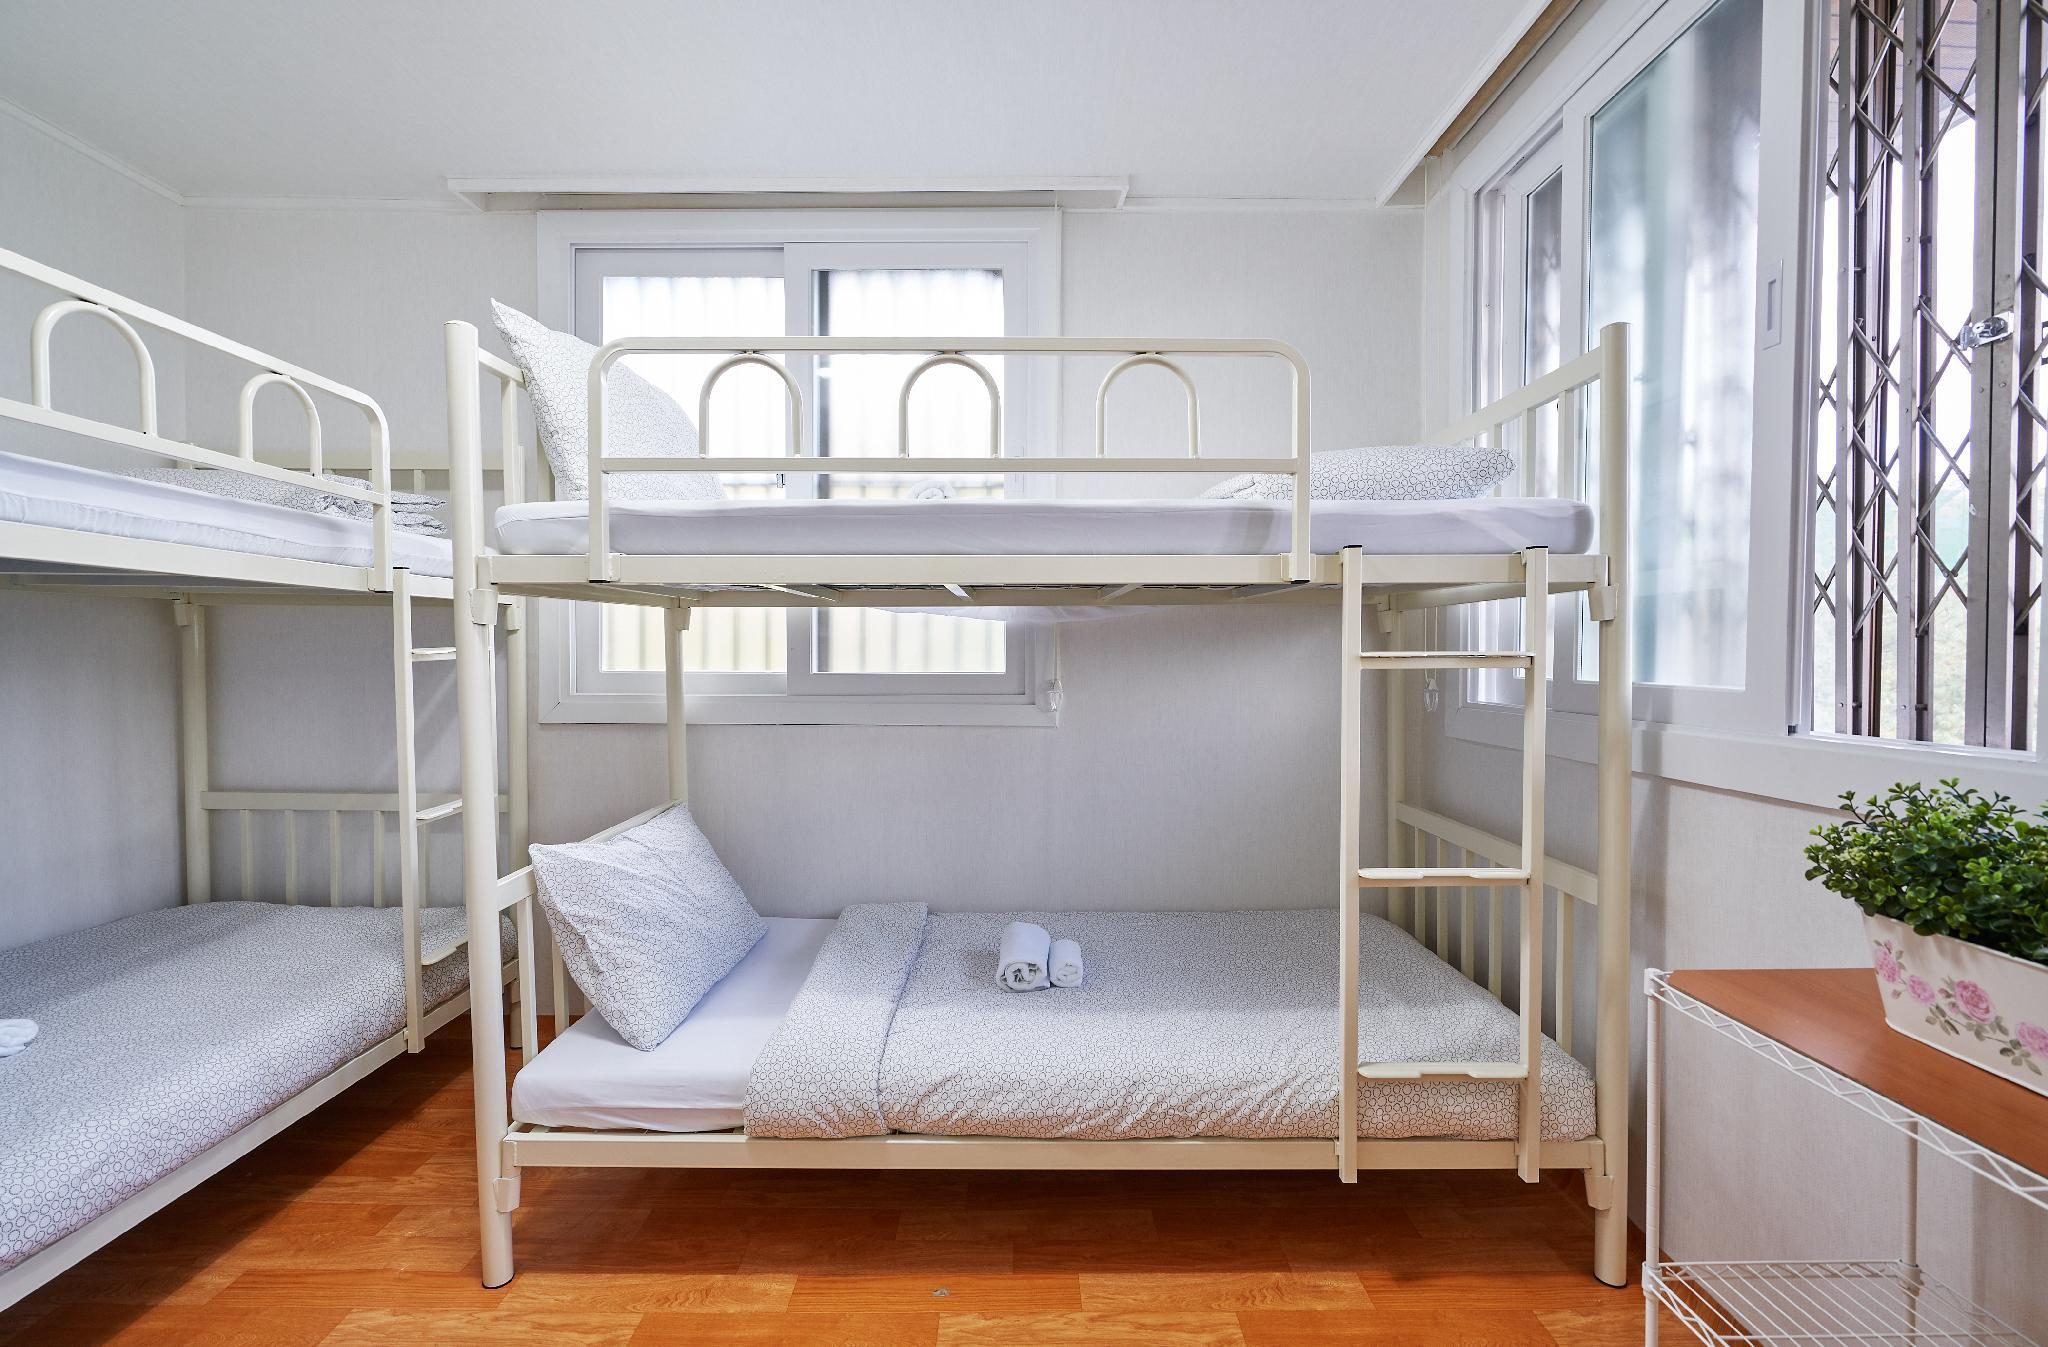 Seoul Best Stay 6 Bed Female Only  Bunk Bed  6